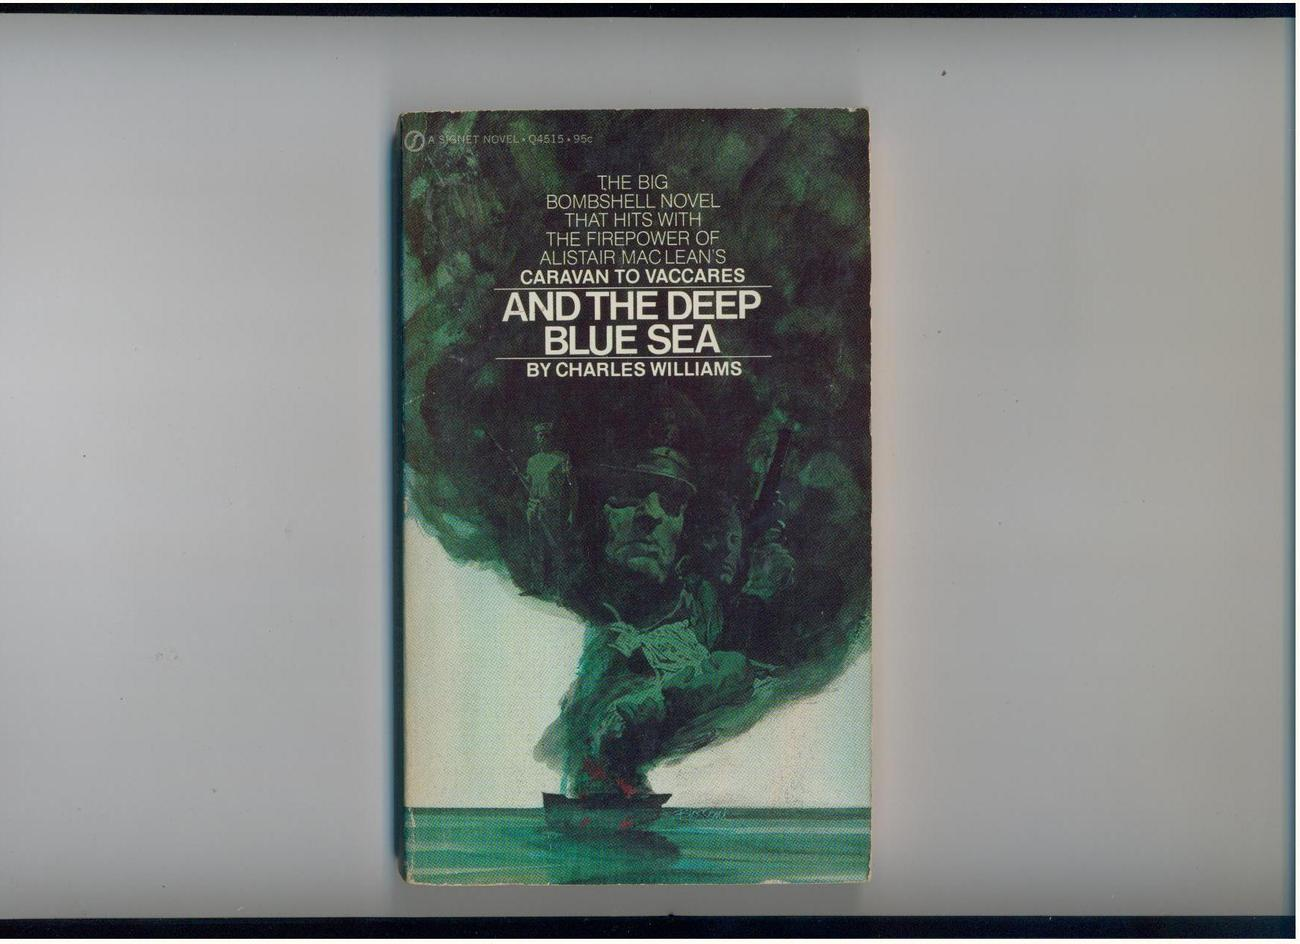 Charles Williams - AND THE DEEP BLUE SEA - 1971 - 1st ed.